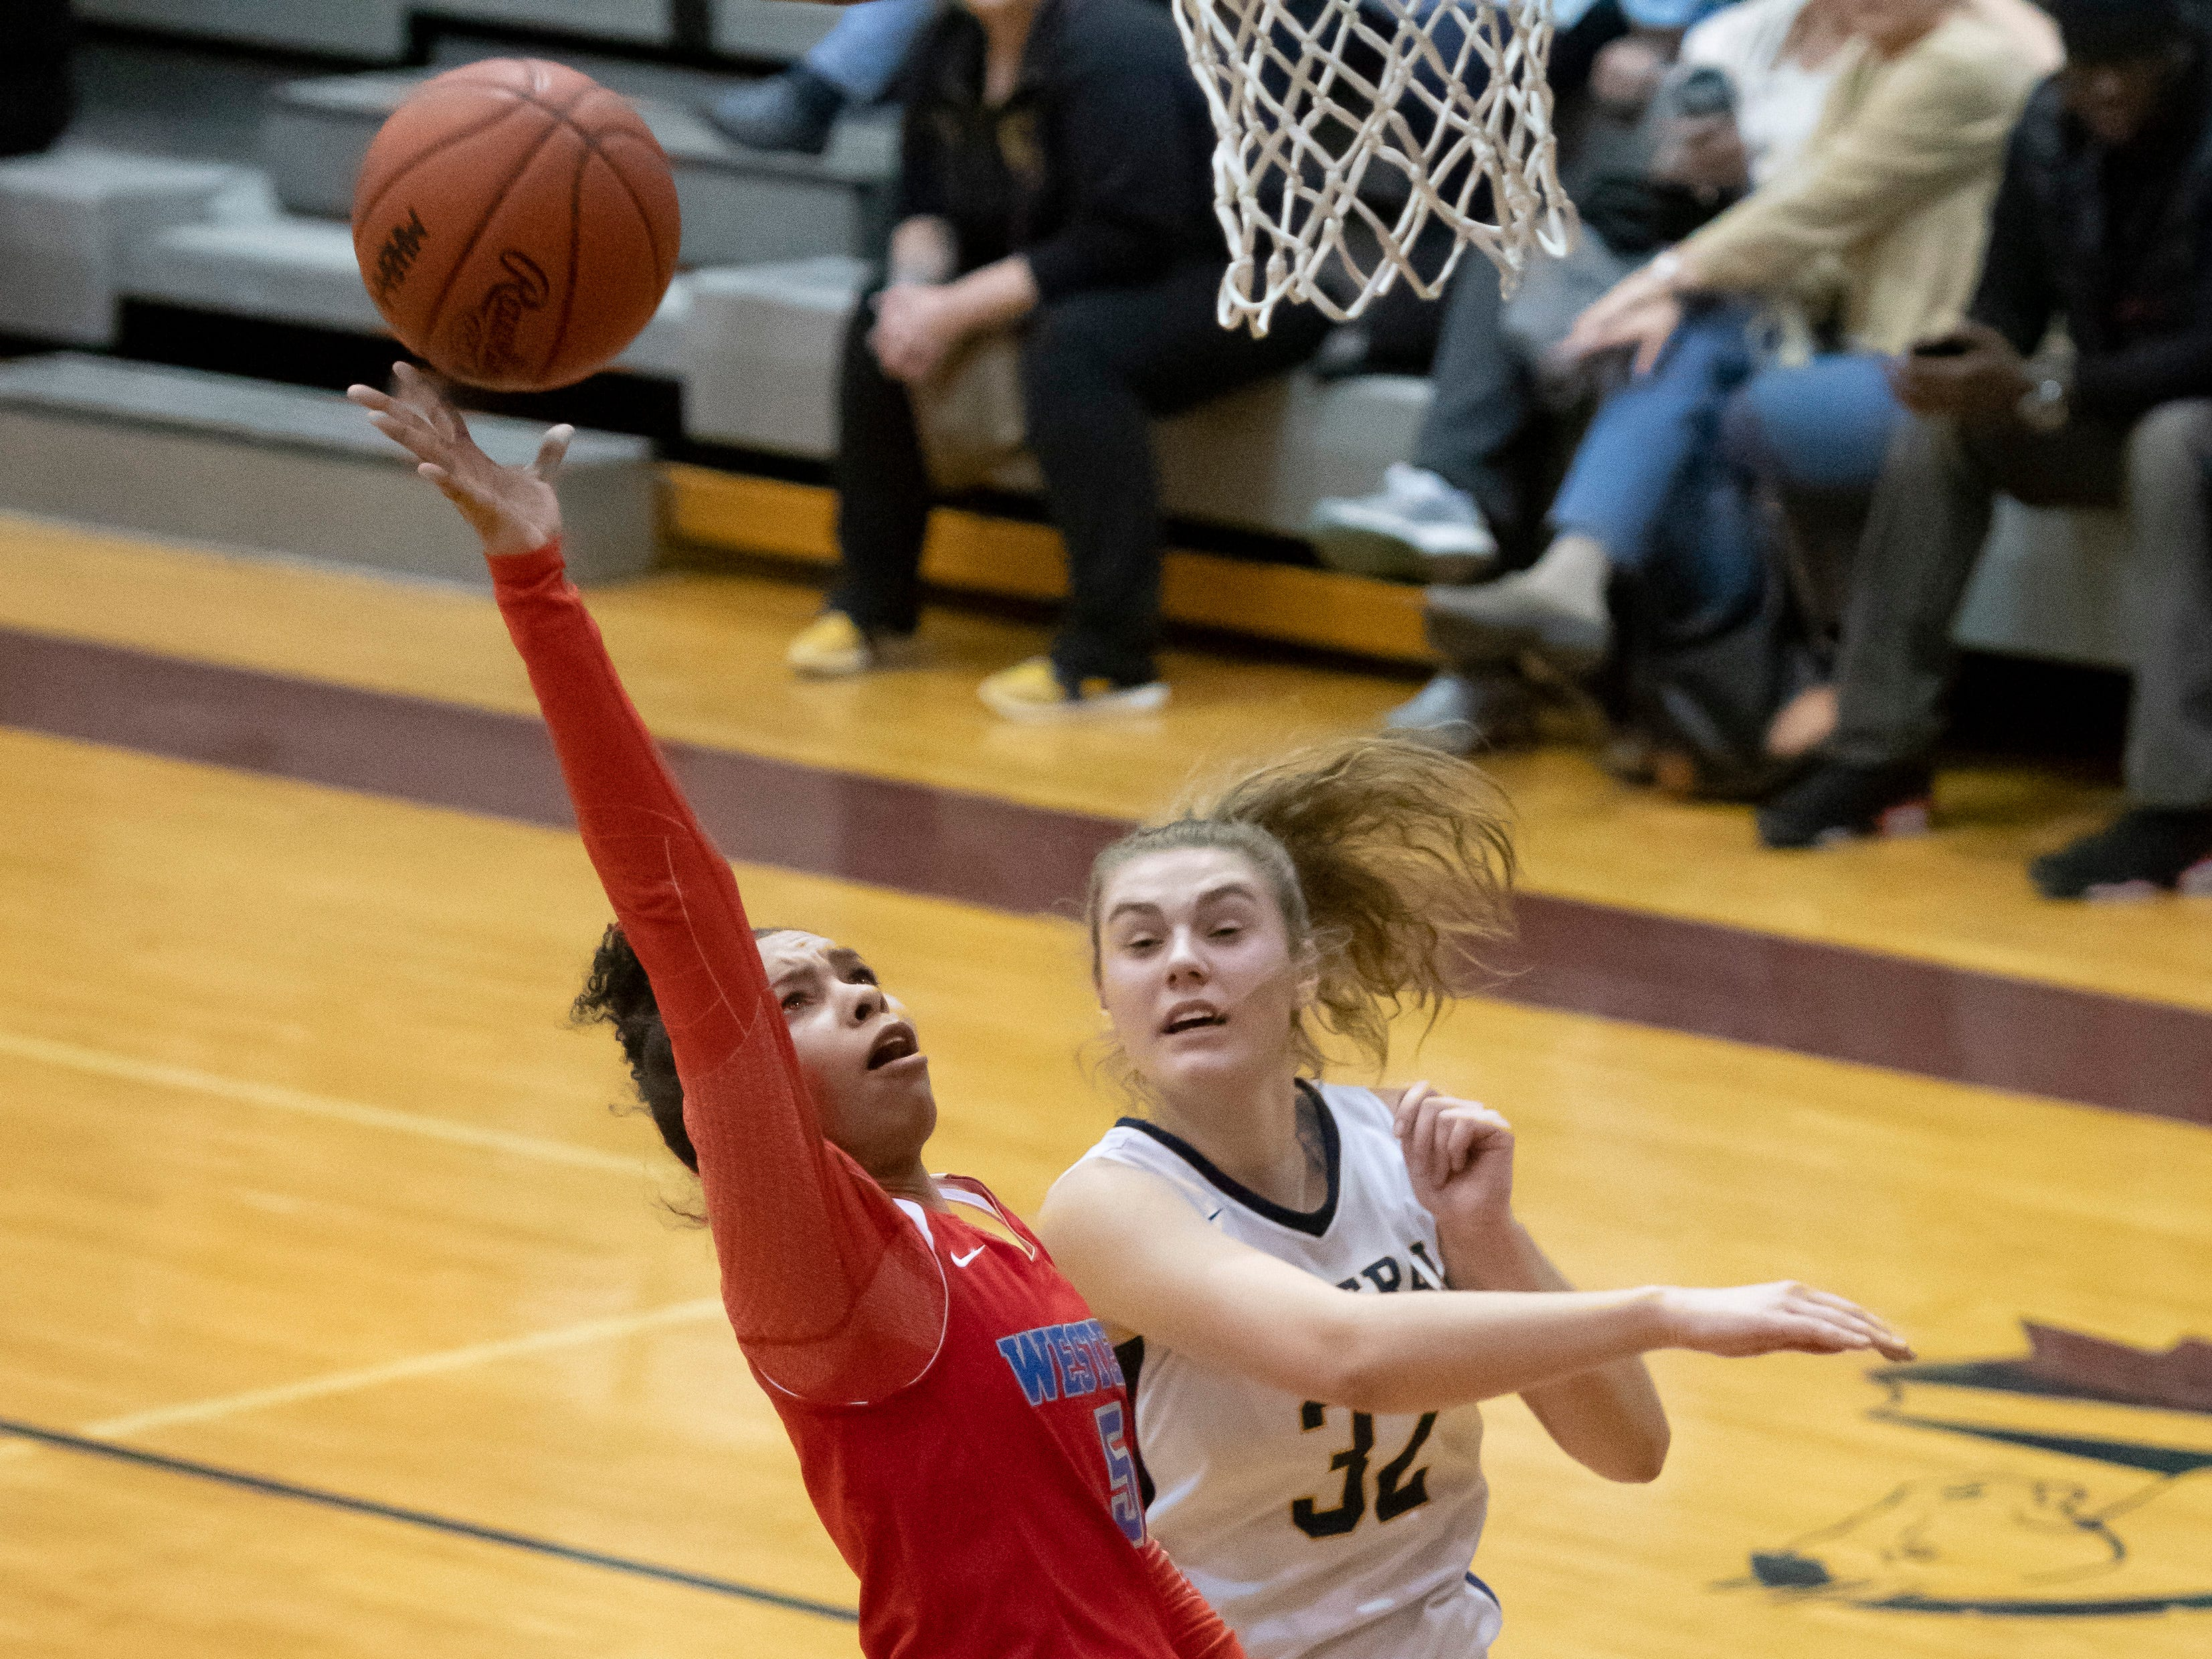 Walled Lake Western guard Kailee Ford takes a shot while being defended by Walled Lake Central's Olivia Emert in the second half.